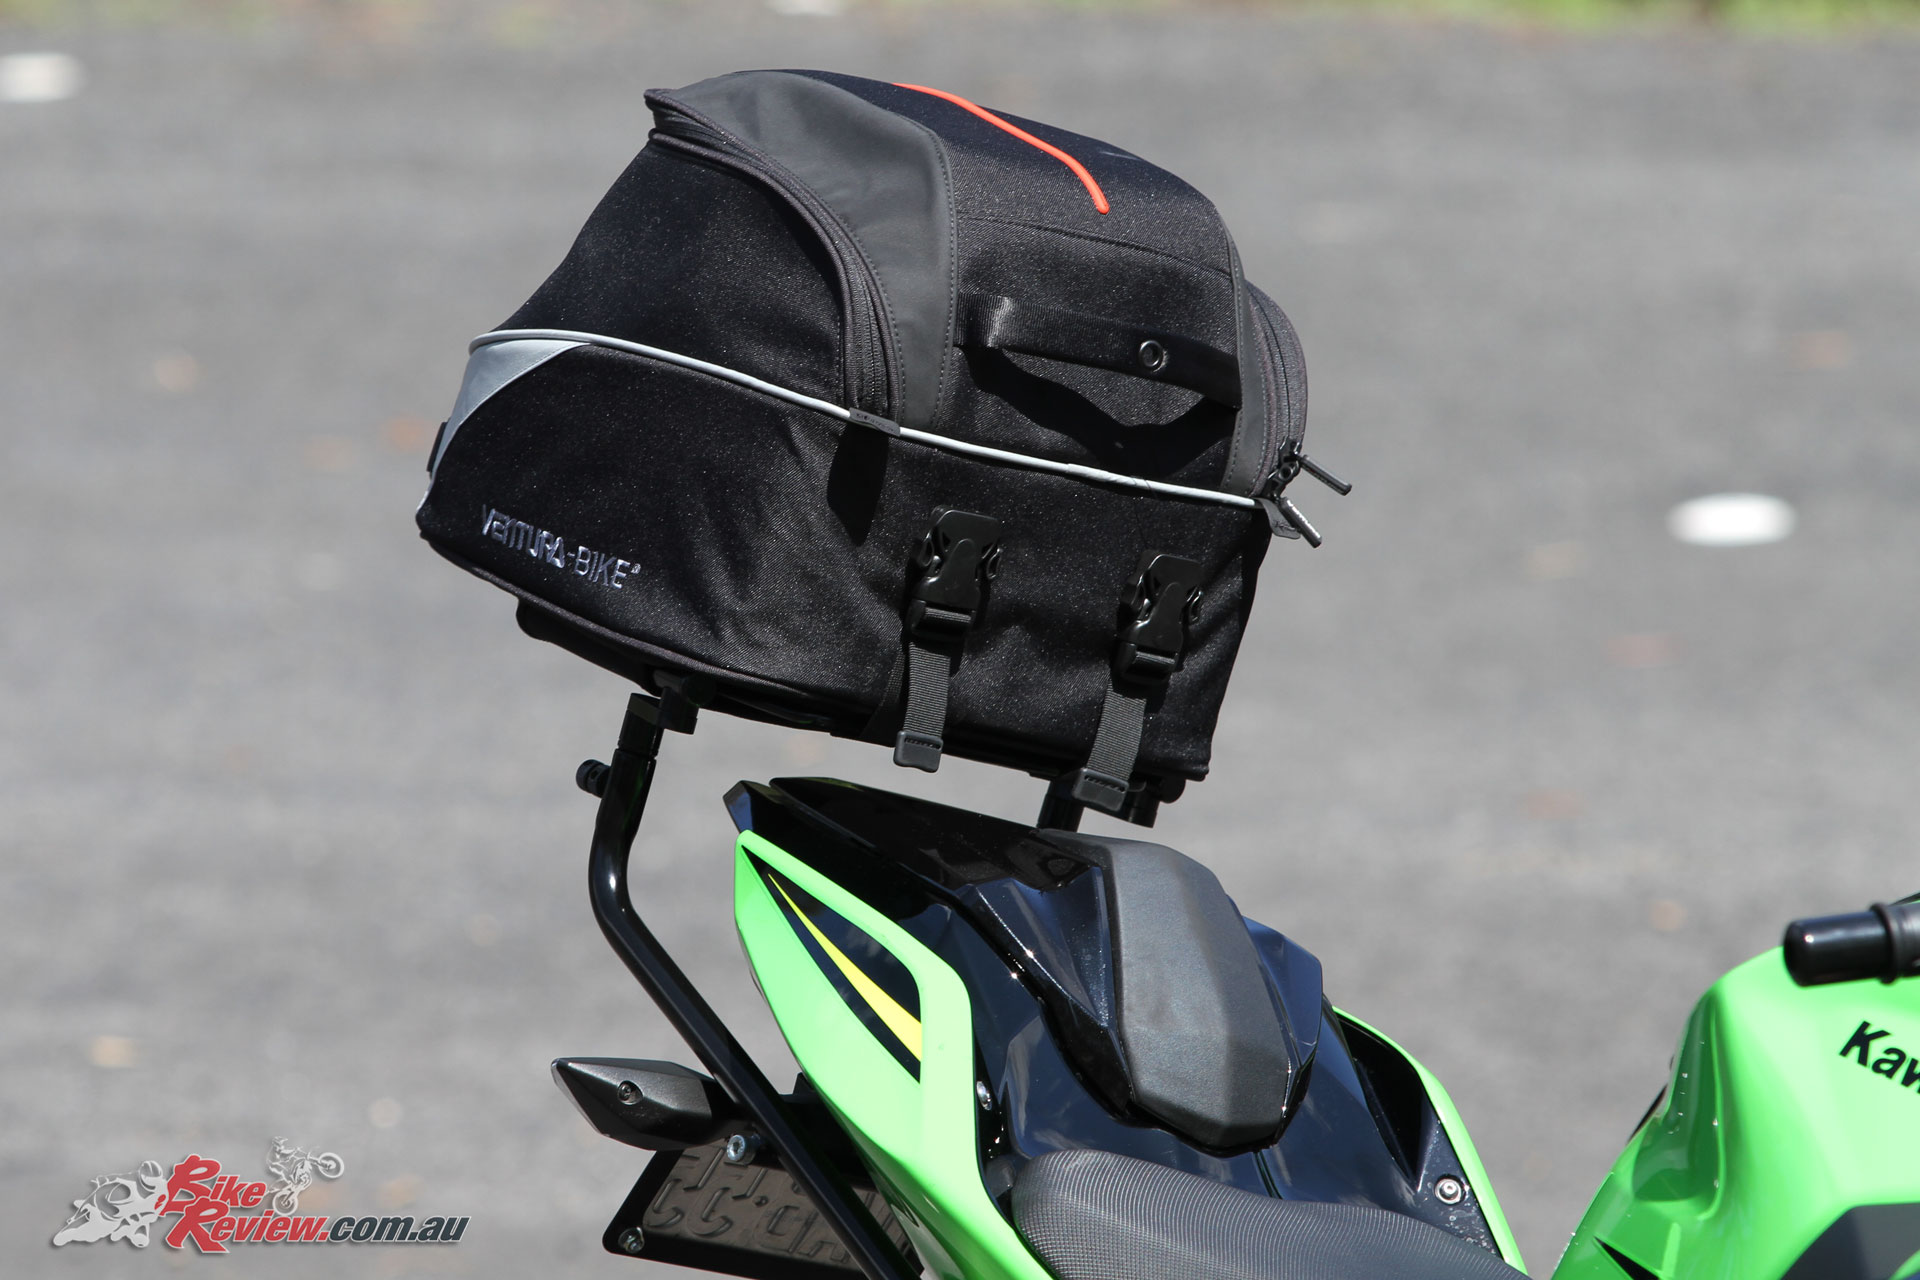 The EVO-22 Bike Pack is typical of Ventura's build quality and attention to detail